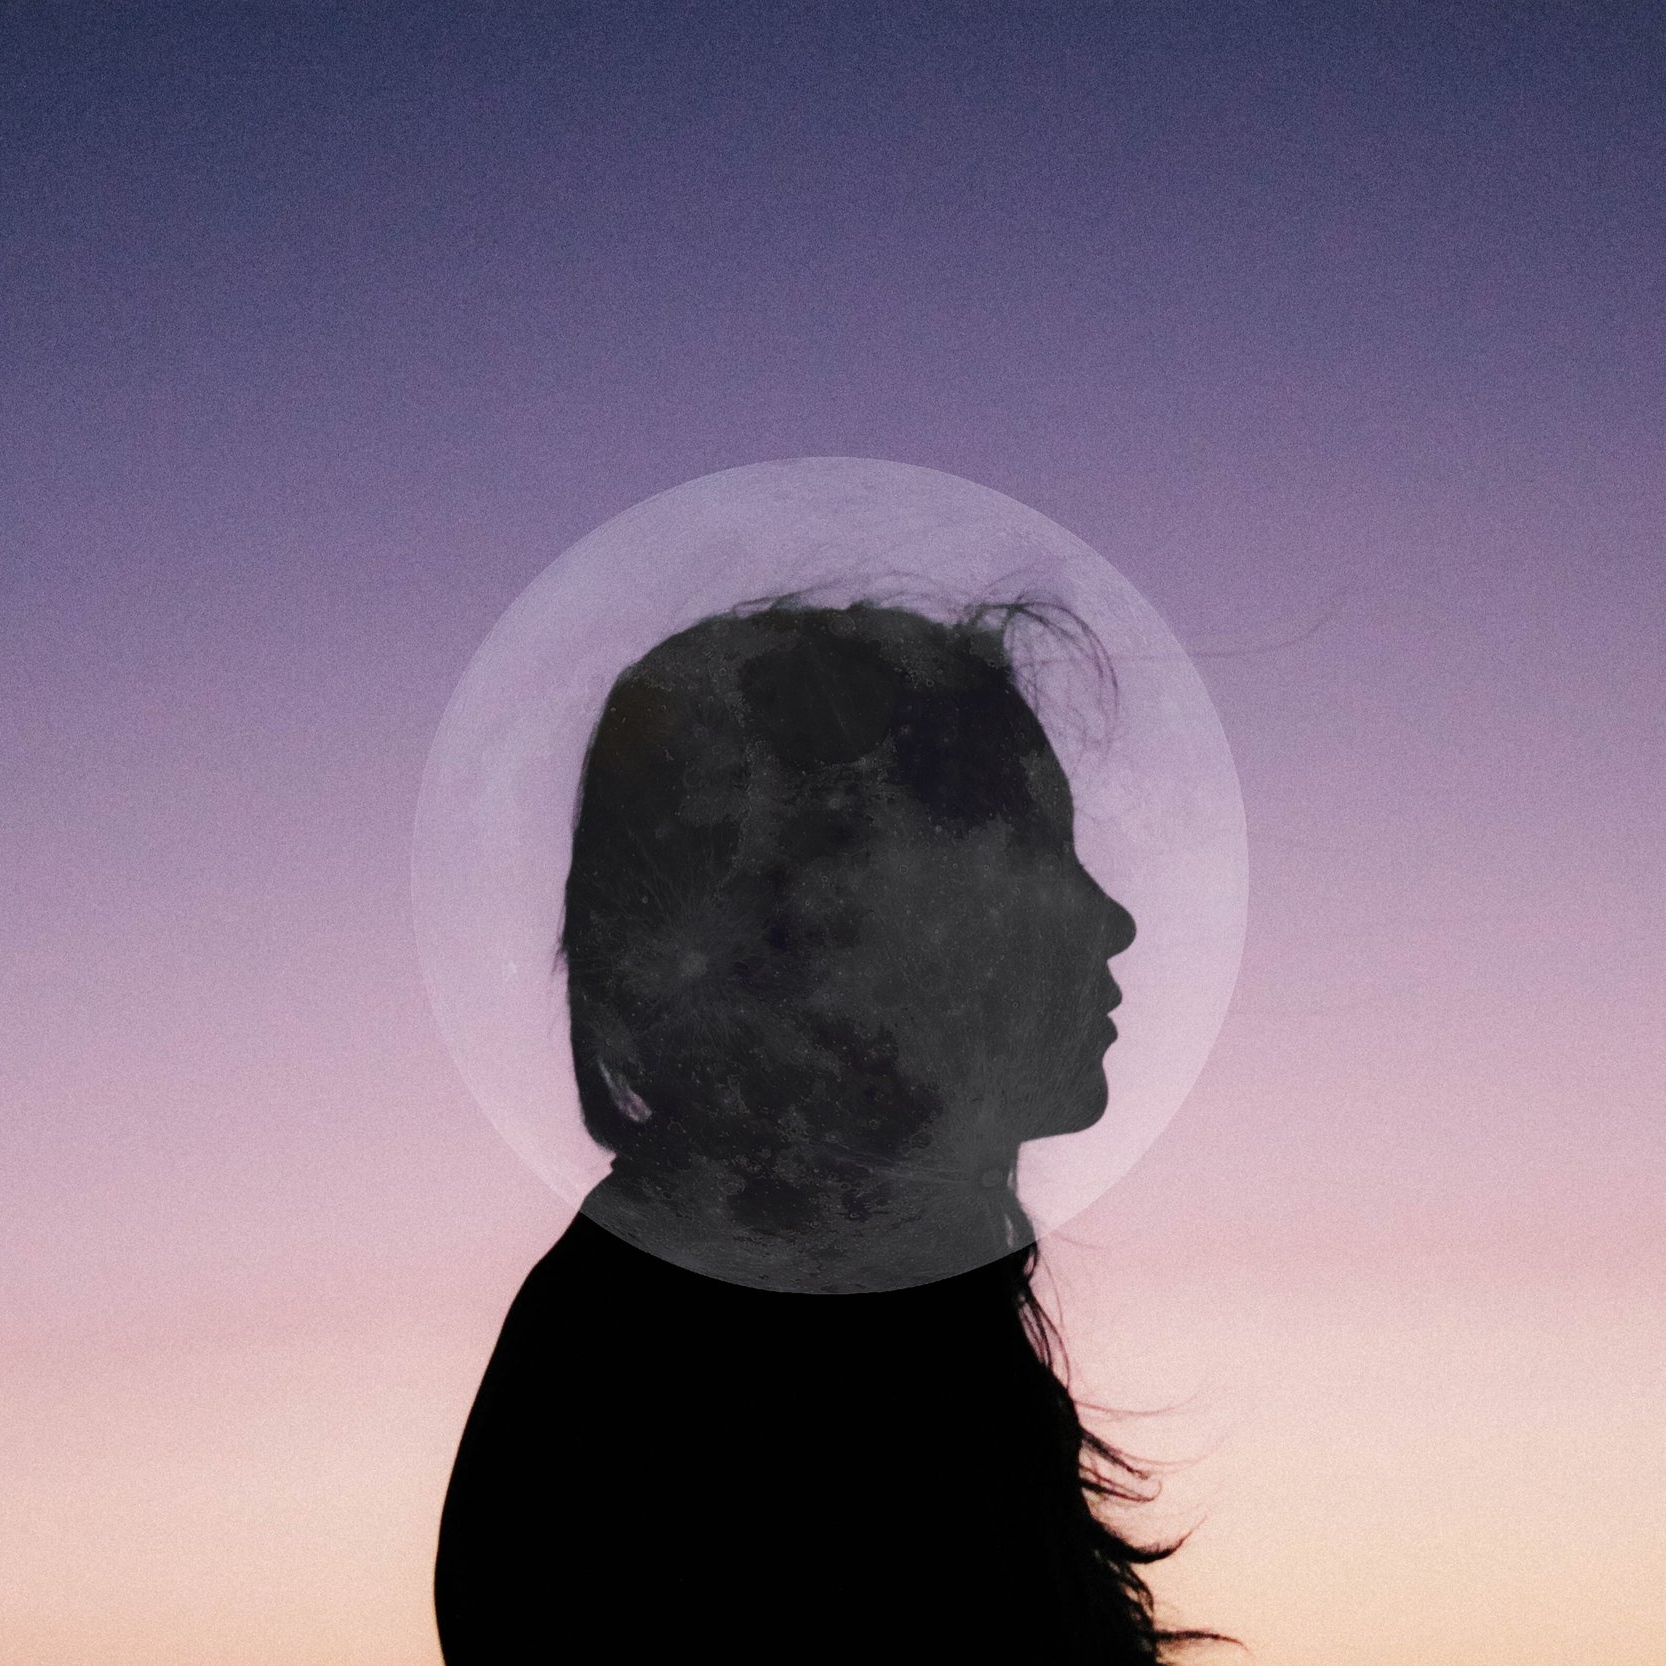 Shadow Moon - A lunar forecast for October 19 - November 4, 2017 by Susan Lipshutz featuring tips and practices for working with the energies of the month.